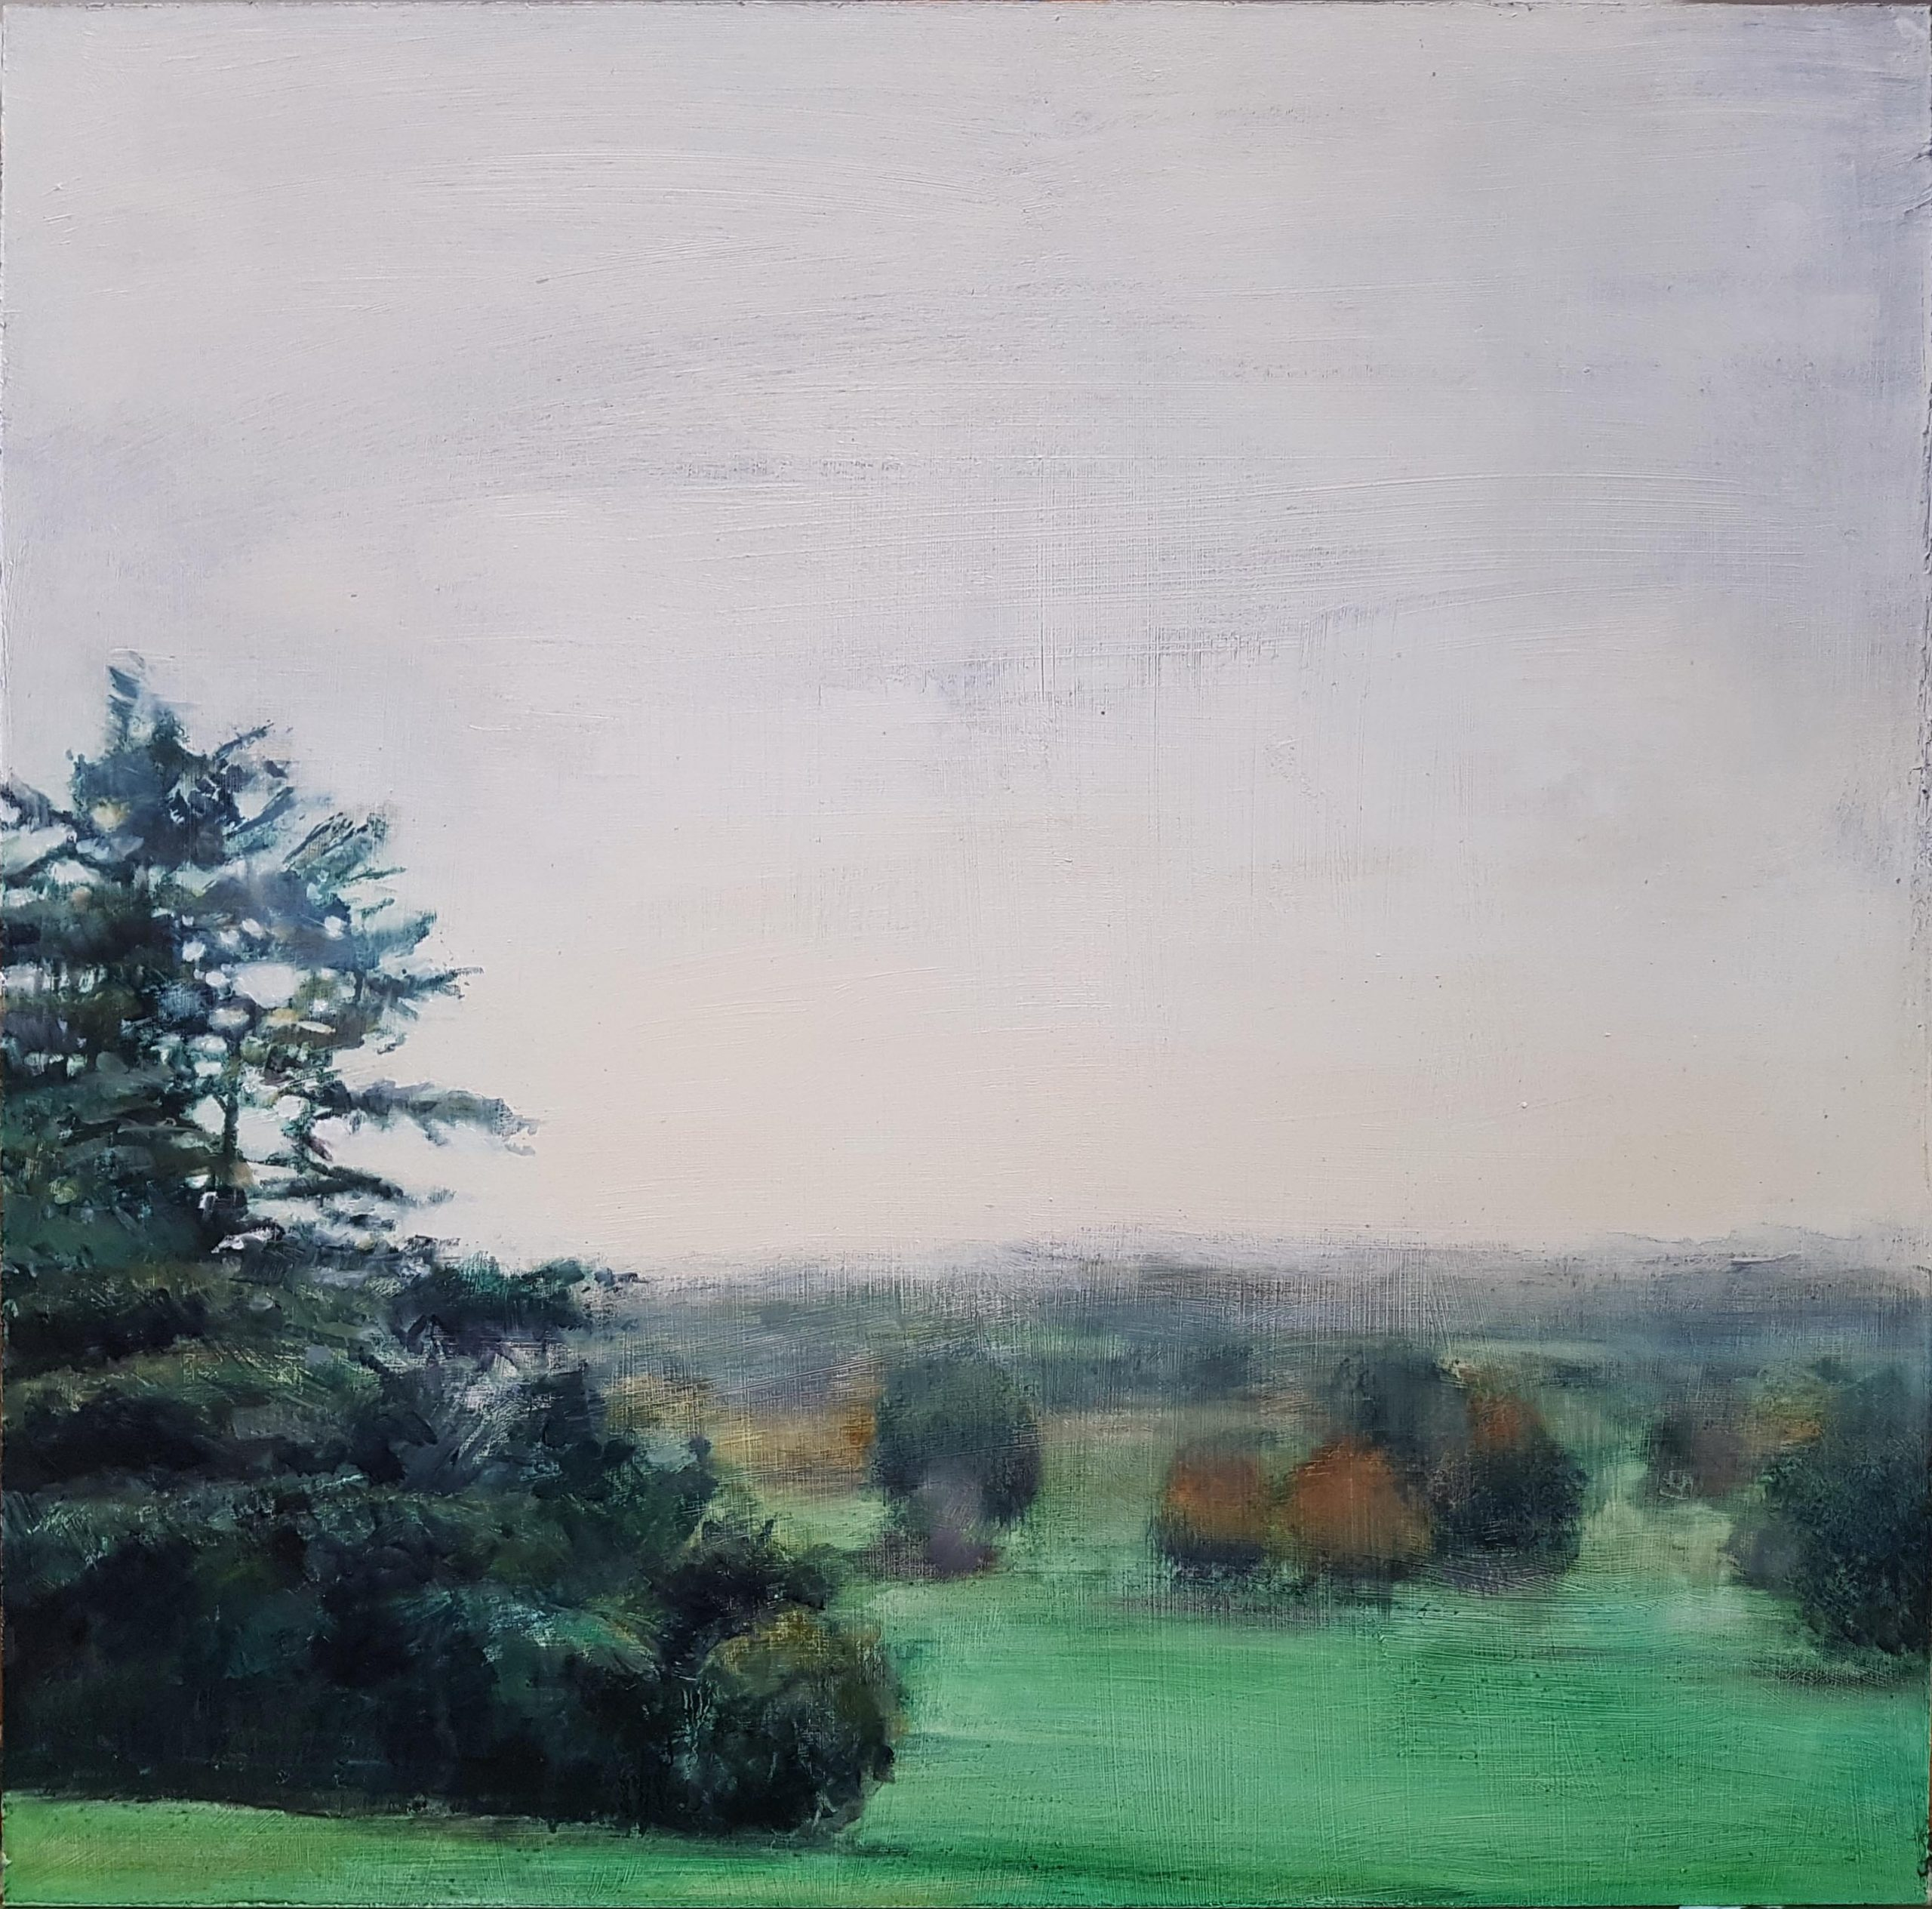 Playground of the Rich and Famous, 2020, oil on board, Landscape Painting of a misty autumn morning, 45x45cm, Julia Brown